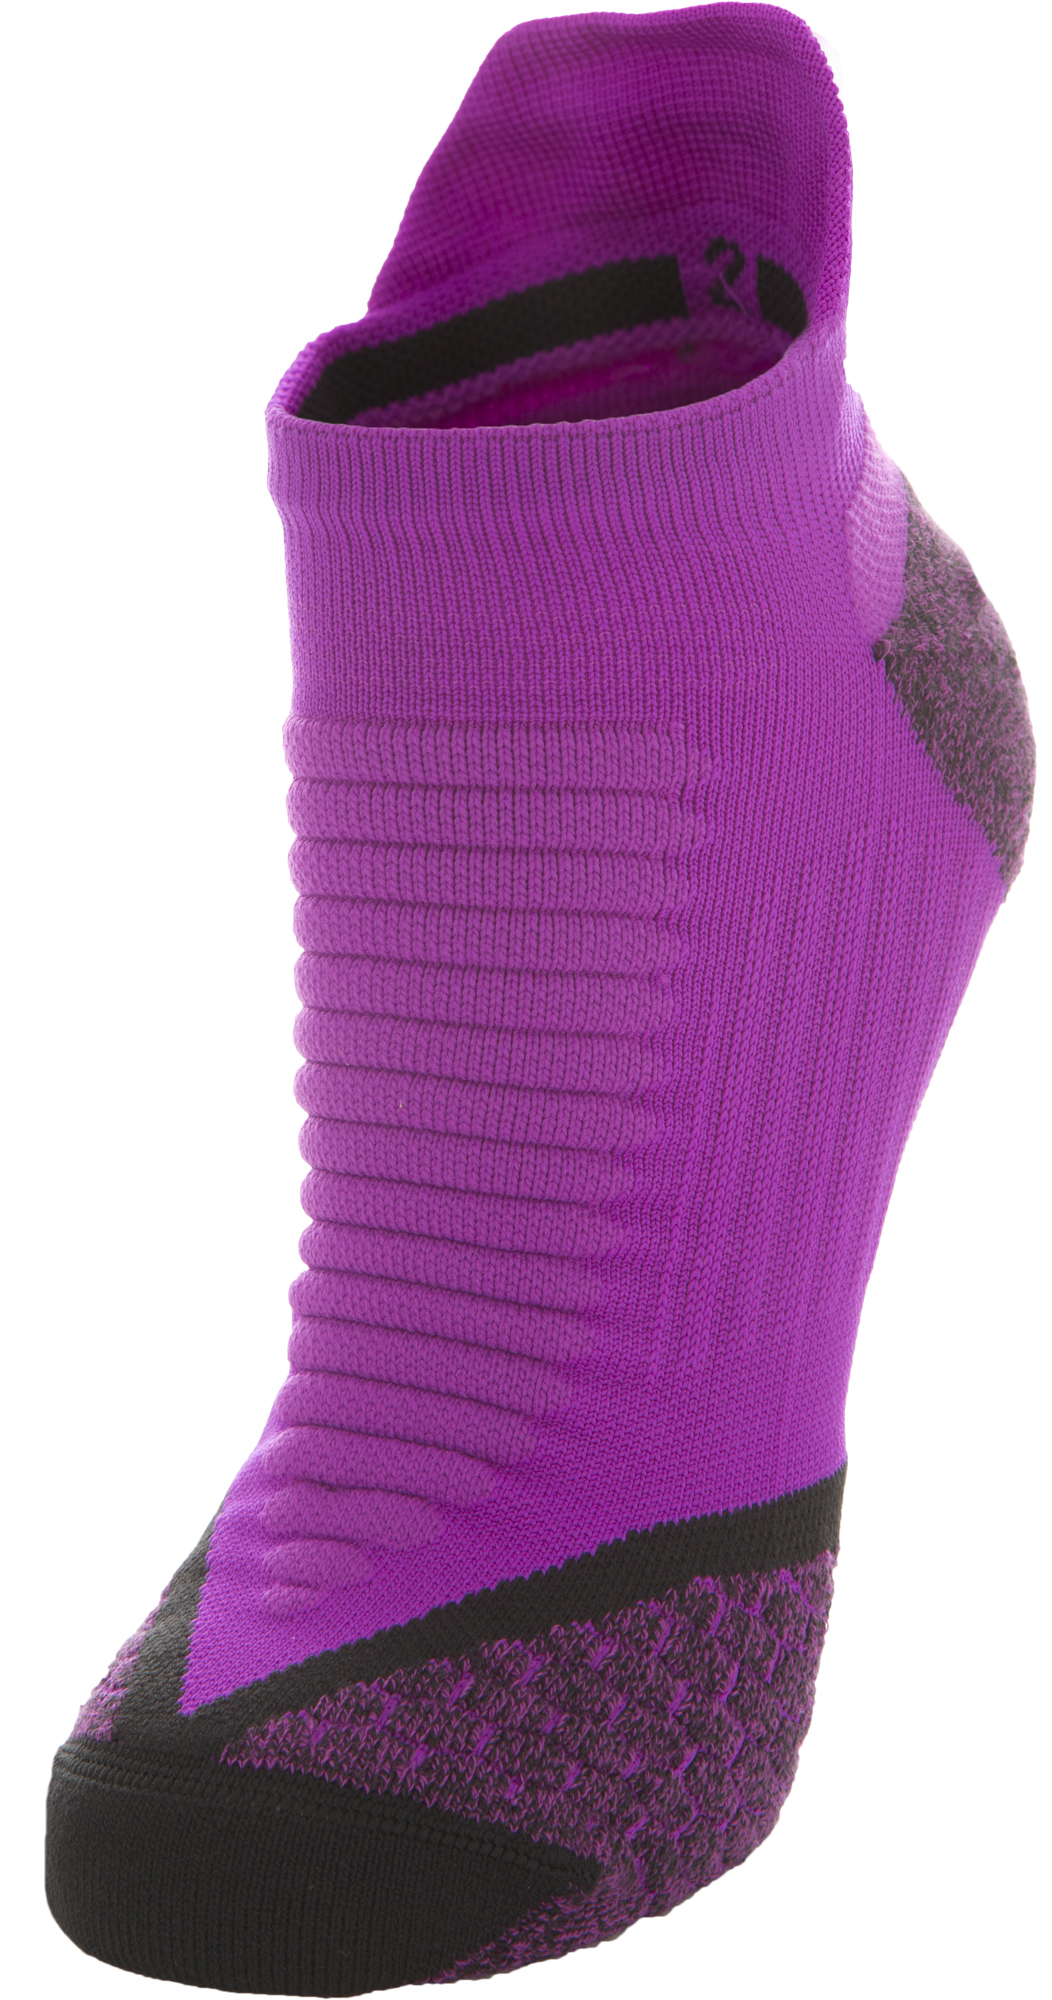 Nike Носки женские Nike Elite Cushioned No-Show Tab, 1 пара чулок д щитков nike guard lock elite sleeve su12 se0173 011 m чёрный